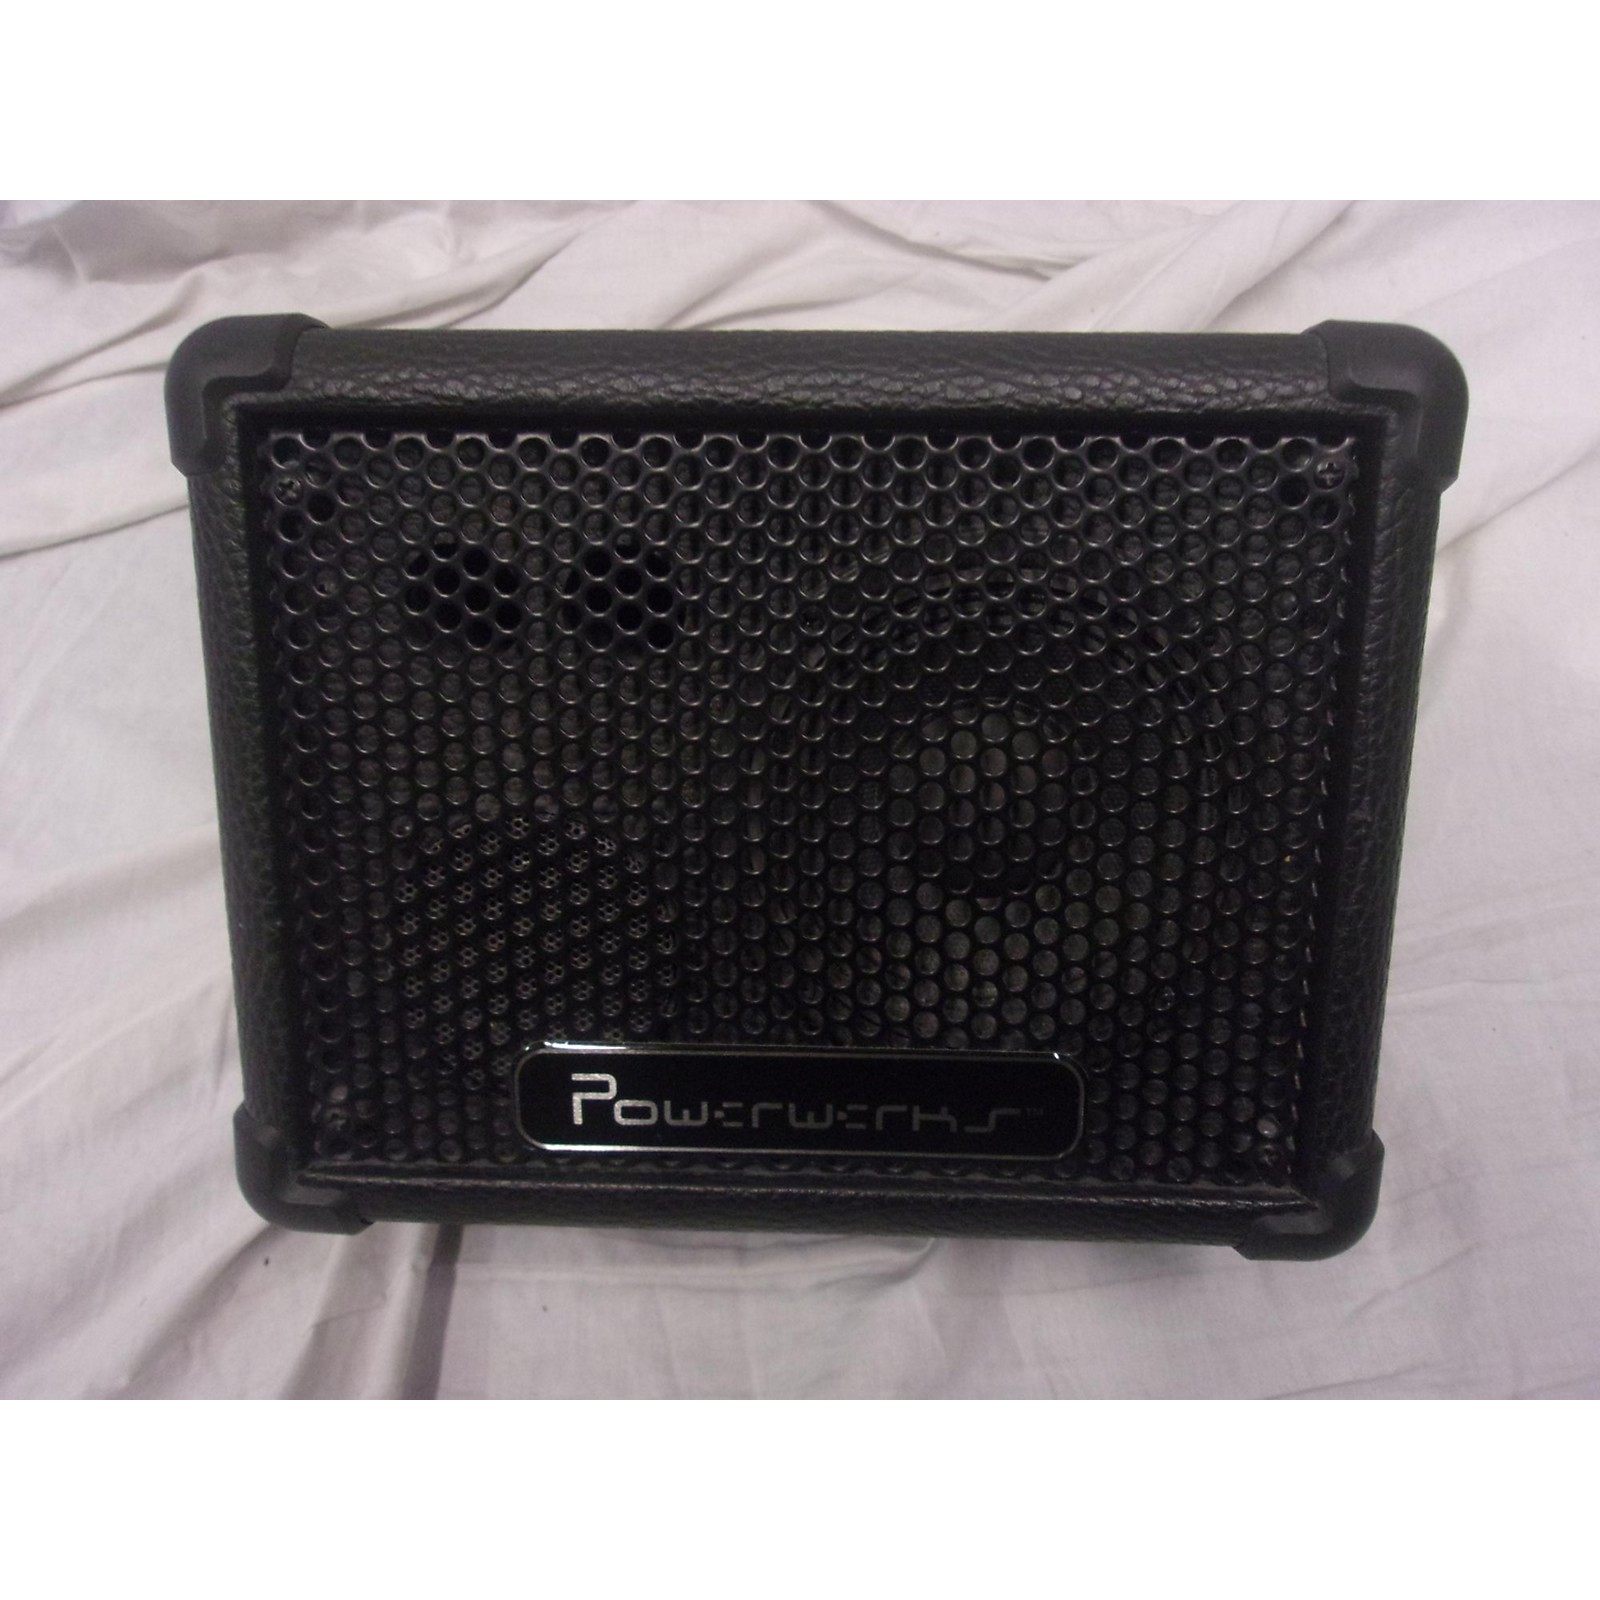 In Store Used Used POWERWERKS PW4P Battery Powered Amp